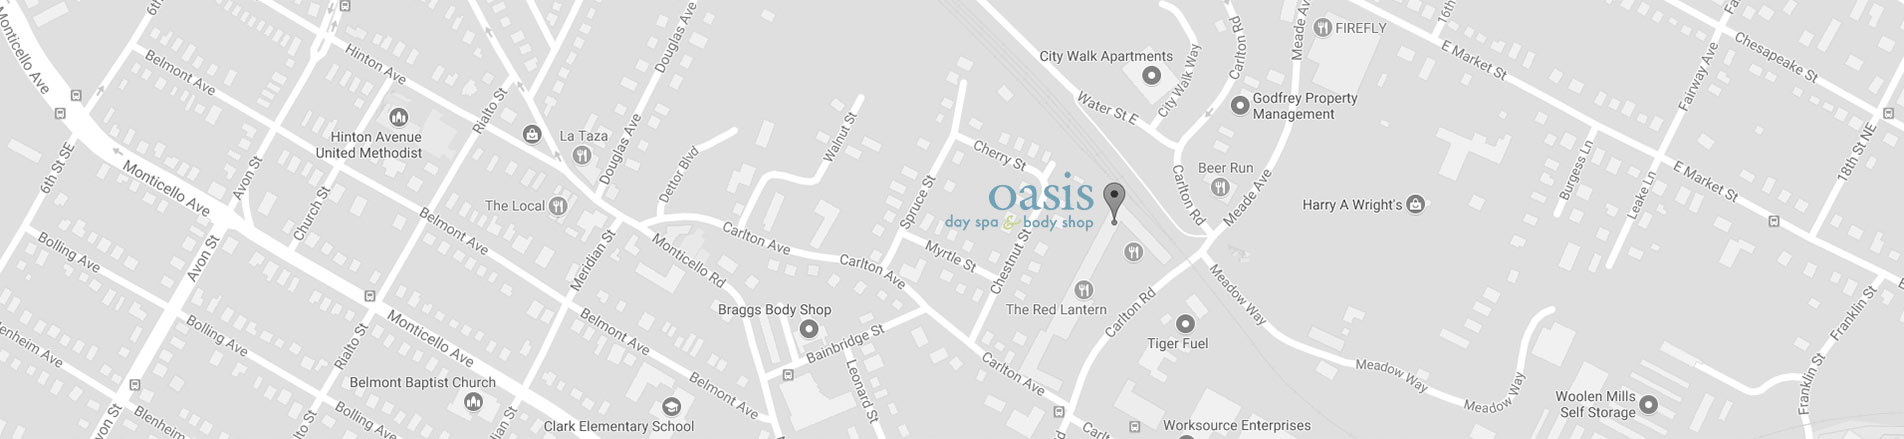 oasis day spa & body shop 221 Carlton Road Charlottesville, VA map